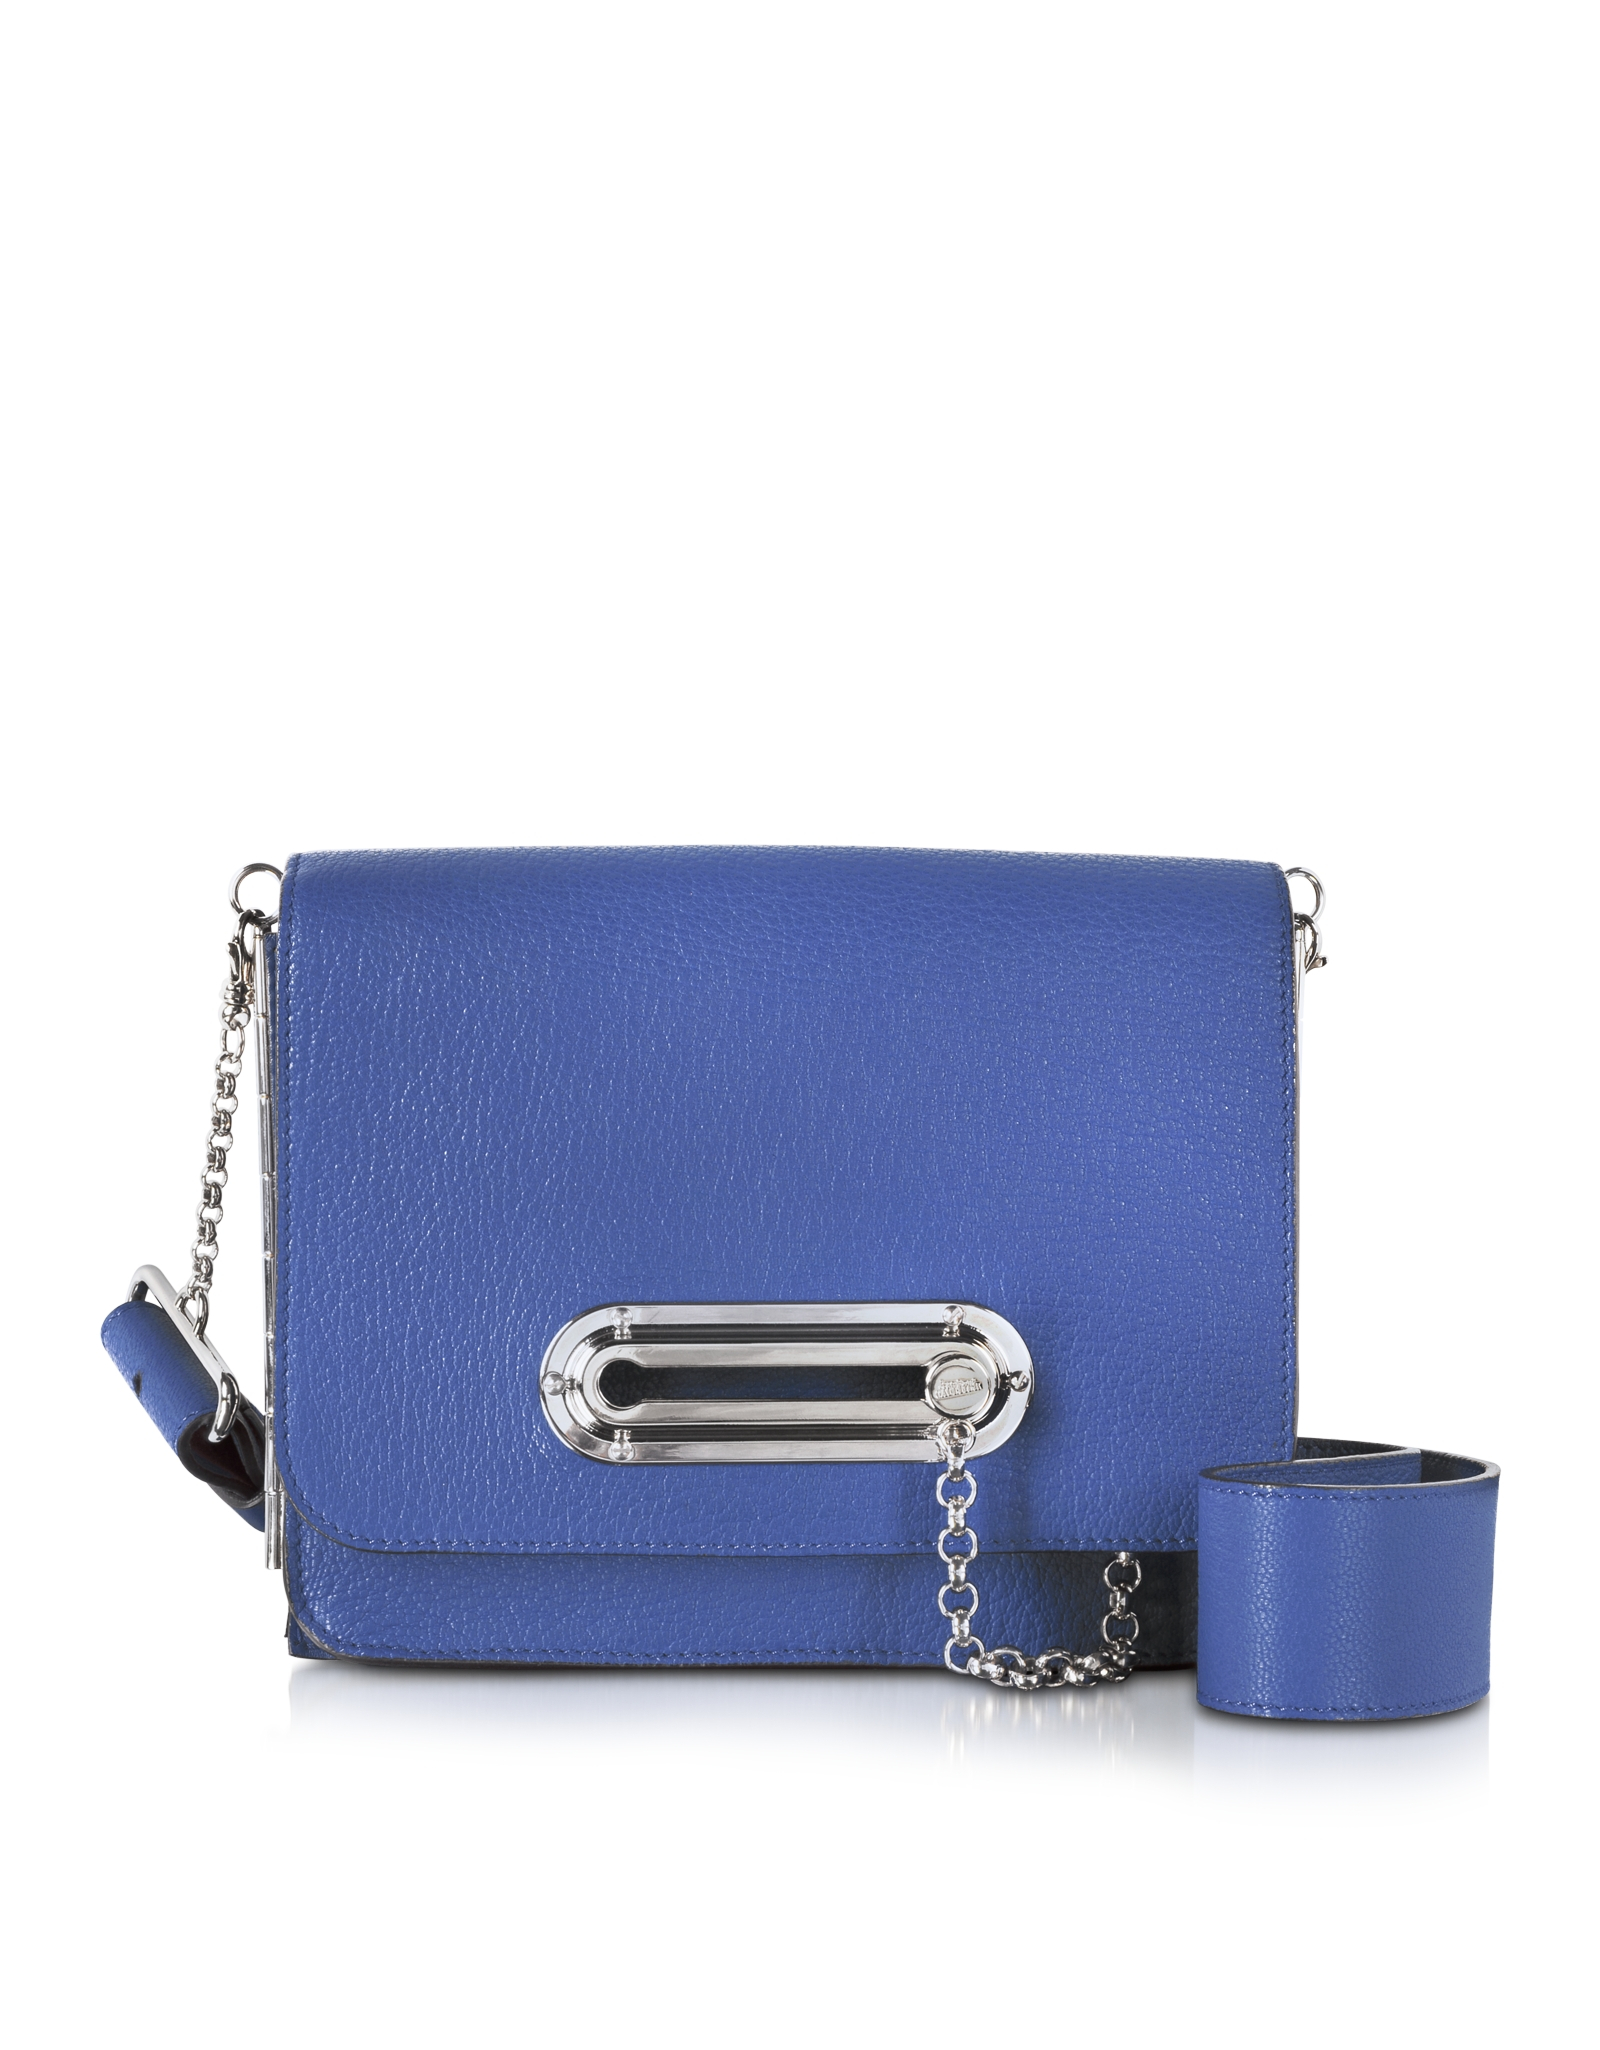 Jean Paul Gaultier Electric Blue Leather Crossbody Bag in Blue